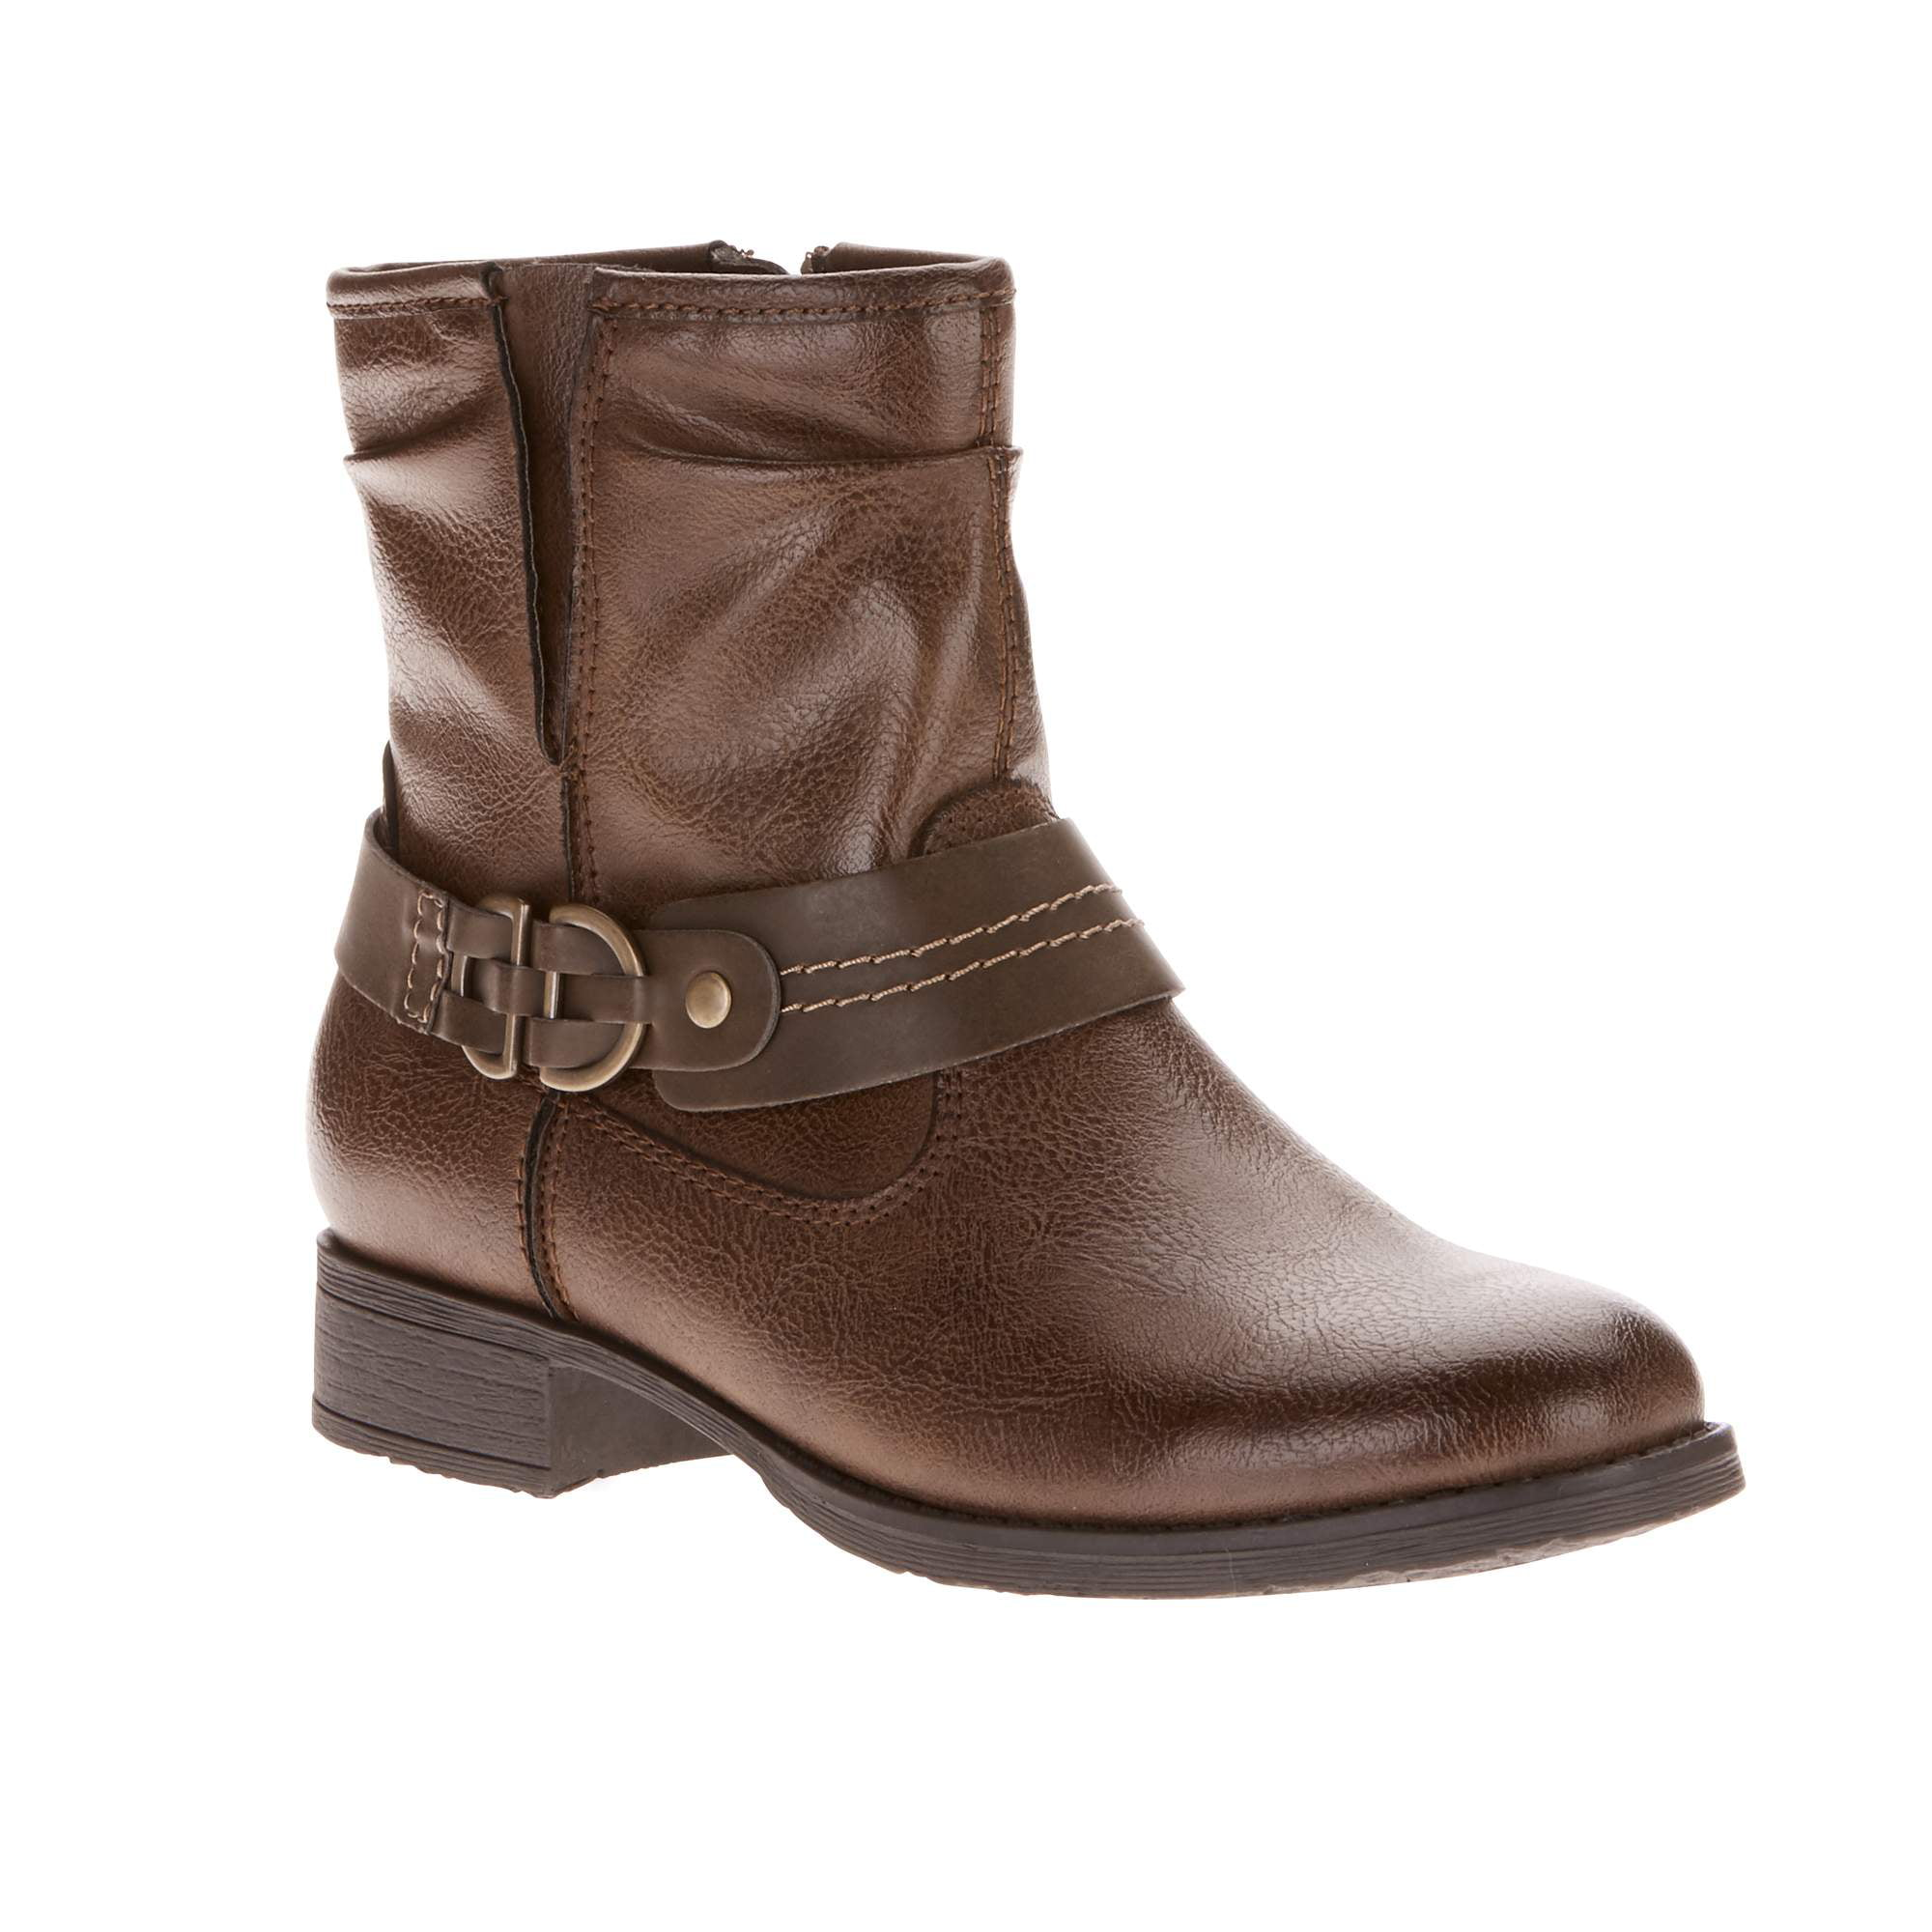 Earth Spirit Women's Addi Boot by YELLOW STONE FOOTWEAR INDUSTRIAL CO.,LTD.FUJIAN